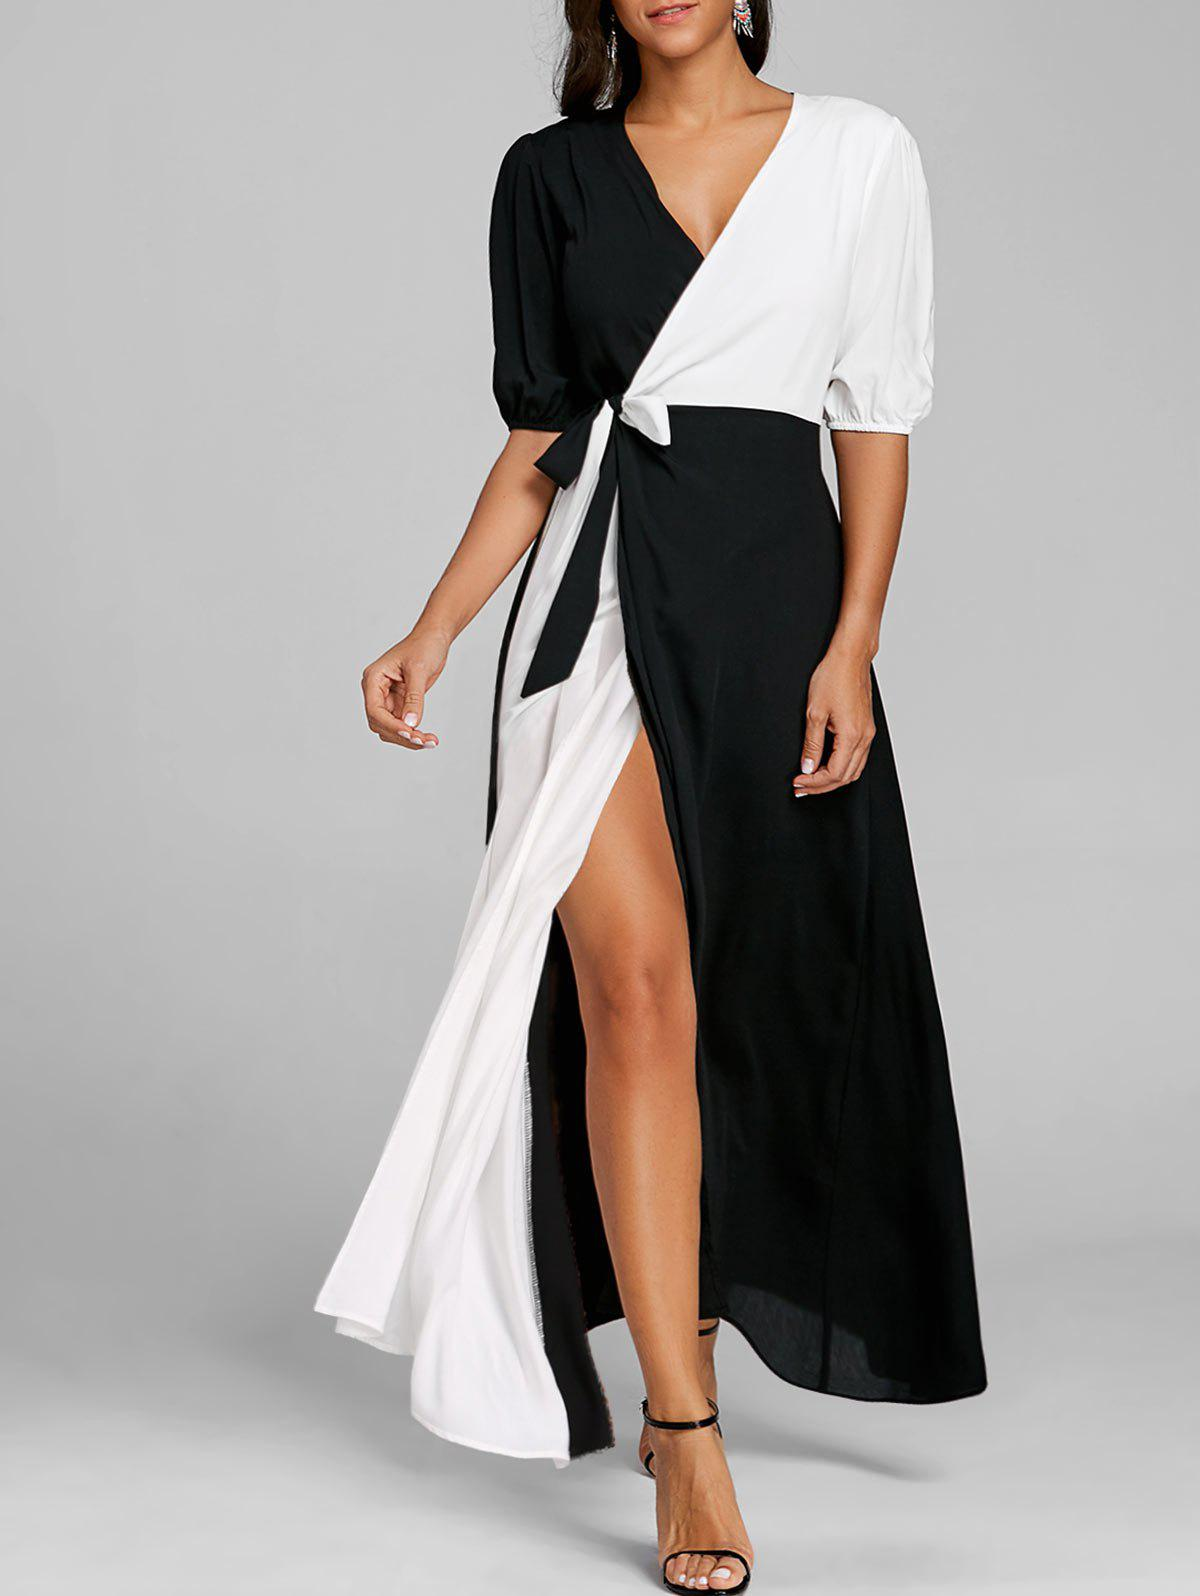 edc42c93cfb7 54% OFF   2019 Puff Sleeve High Slit Color Block Maxi Dress ...